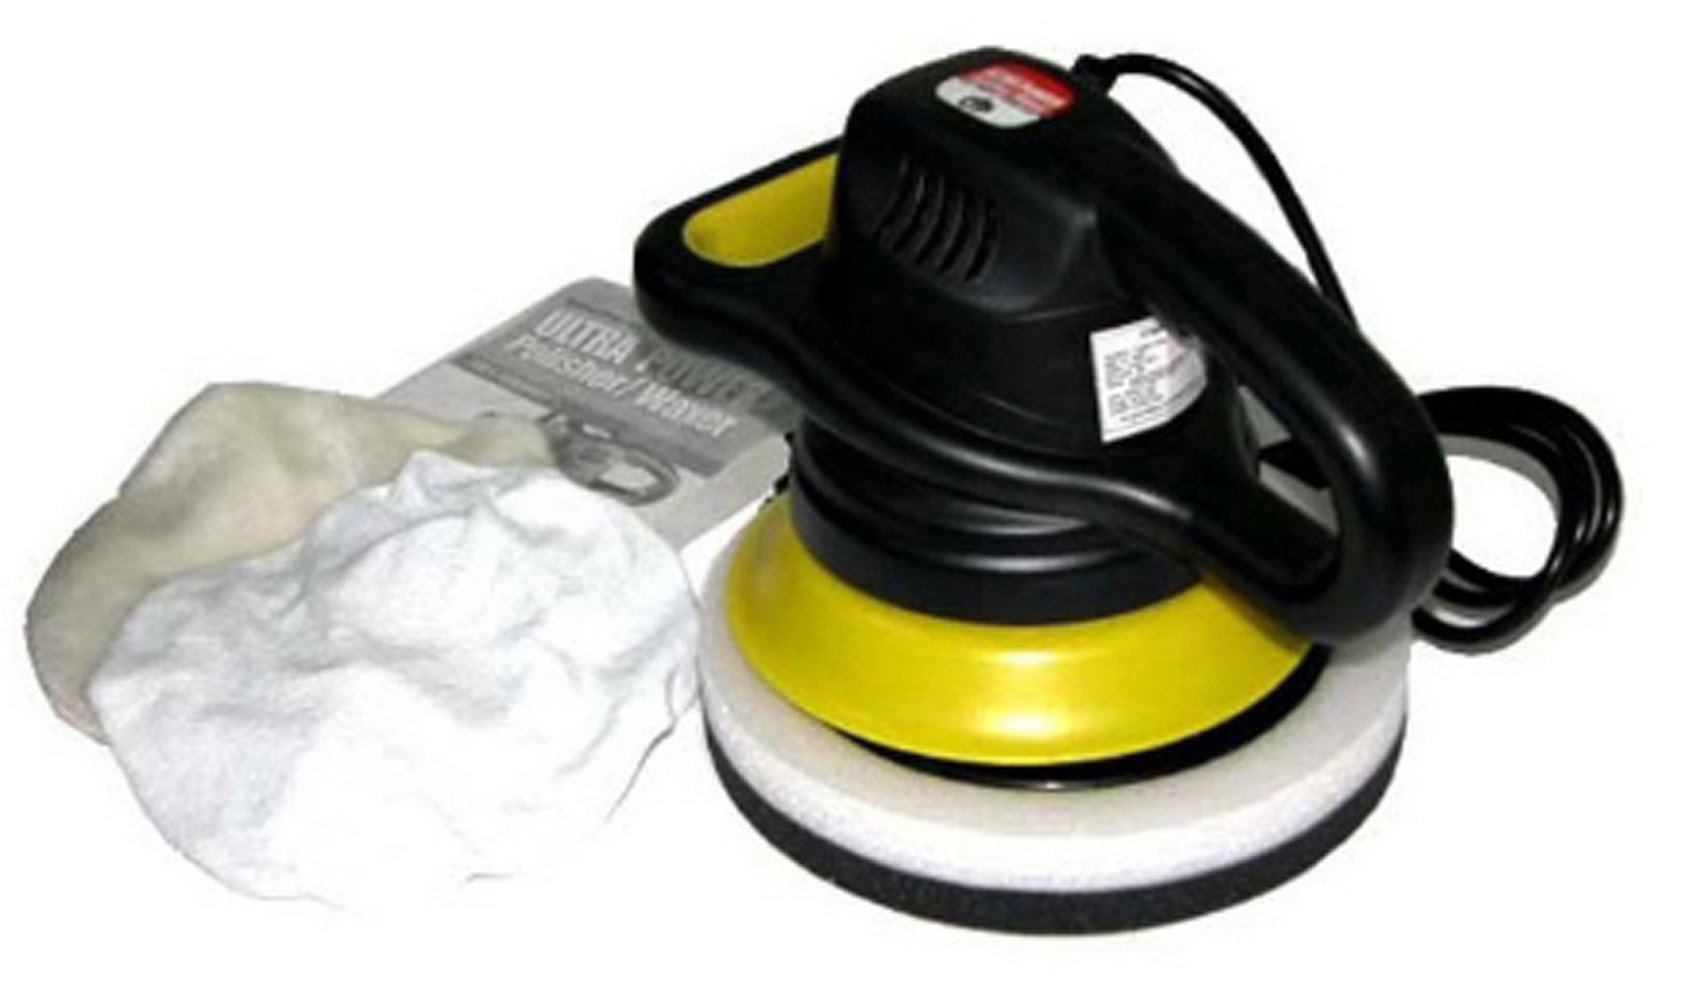 Car Tech 9 inches Automotive Waxer/Polisher 12Volt, 3200RPM, 60Watt Including 2 Pad for Glossy, Waxing